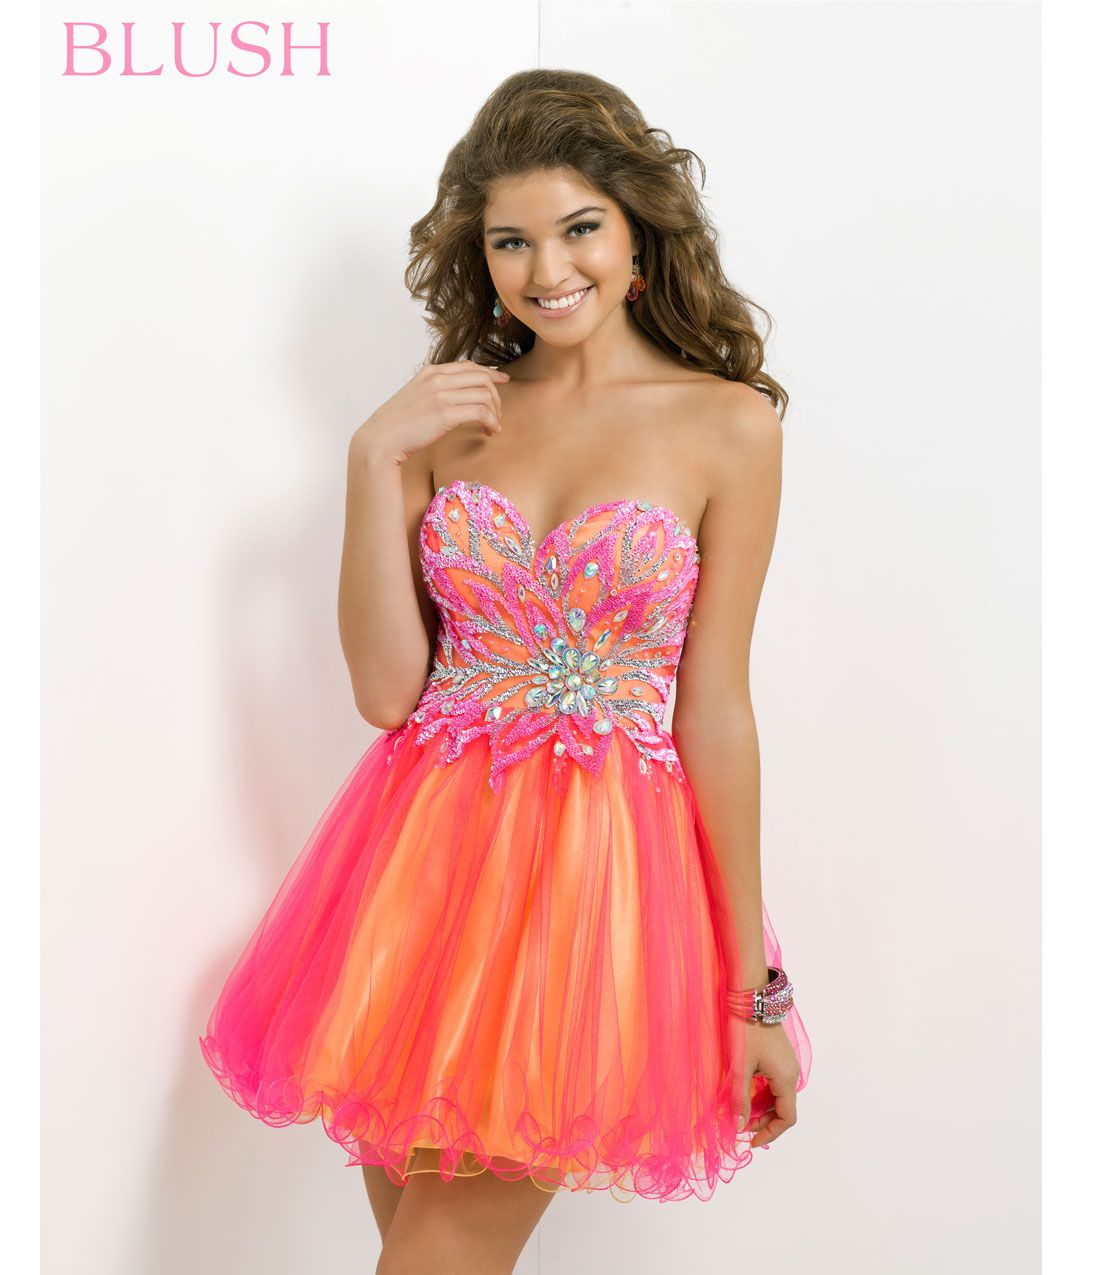 Blush 2014 Prom Dresses – Hot Pink & Yellow Strapless Short Prom ...